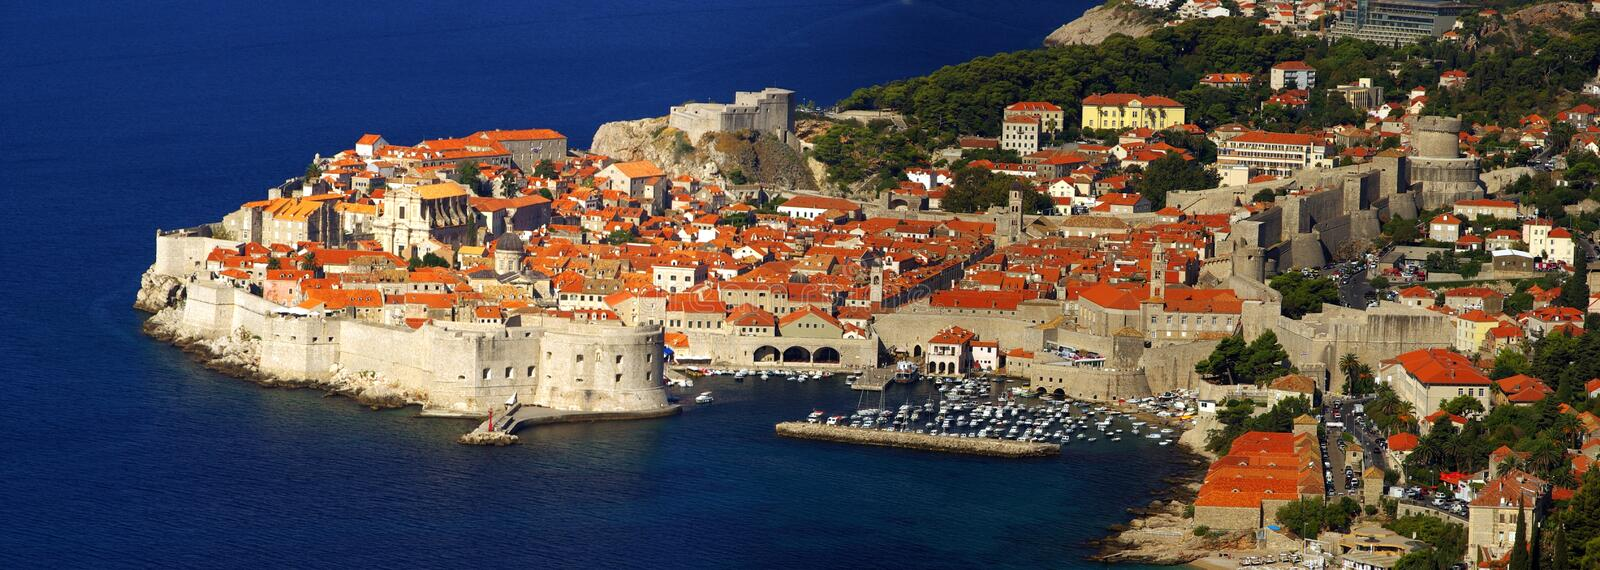 Dubrovnik view 06 royalty free stock photography